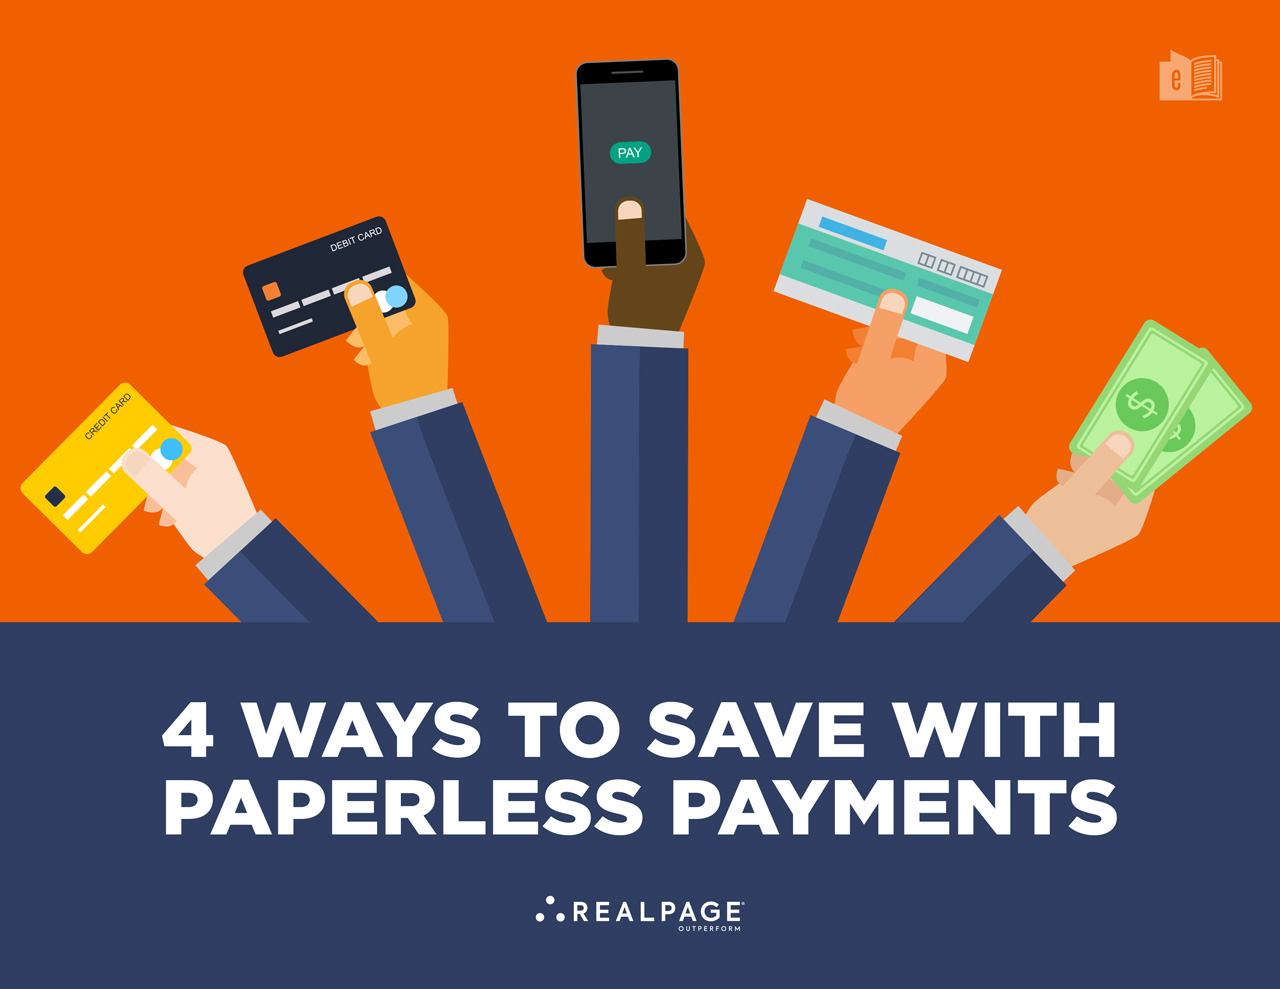 get the ebook: 4 ways to save with paperless payments